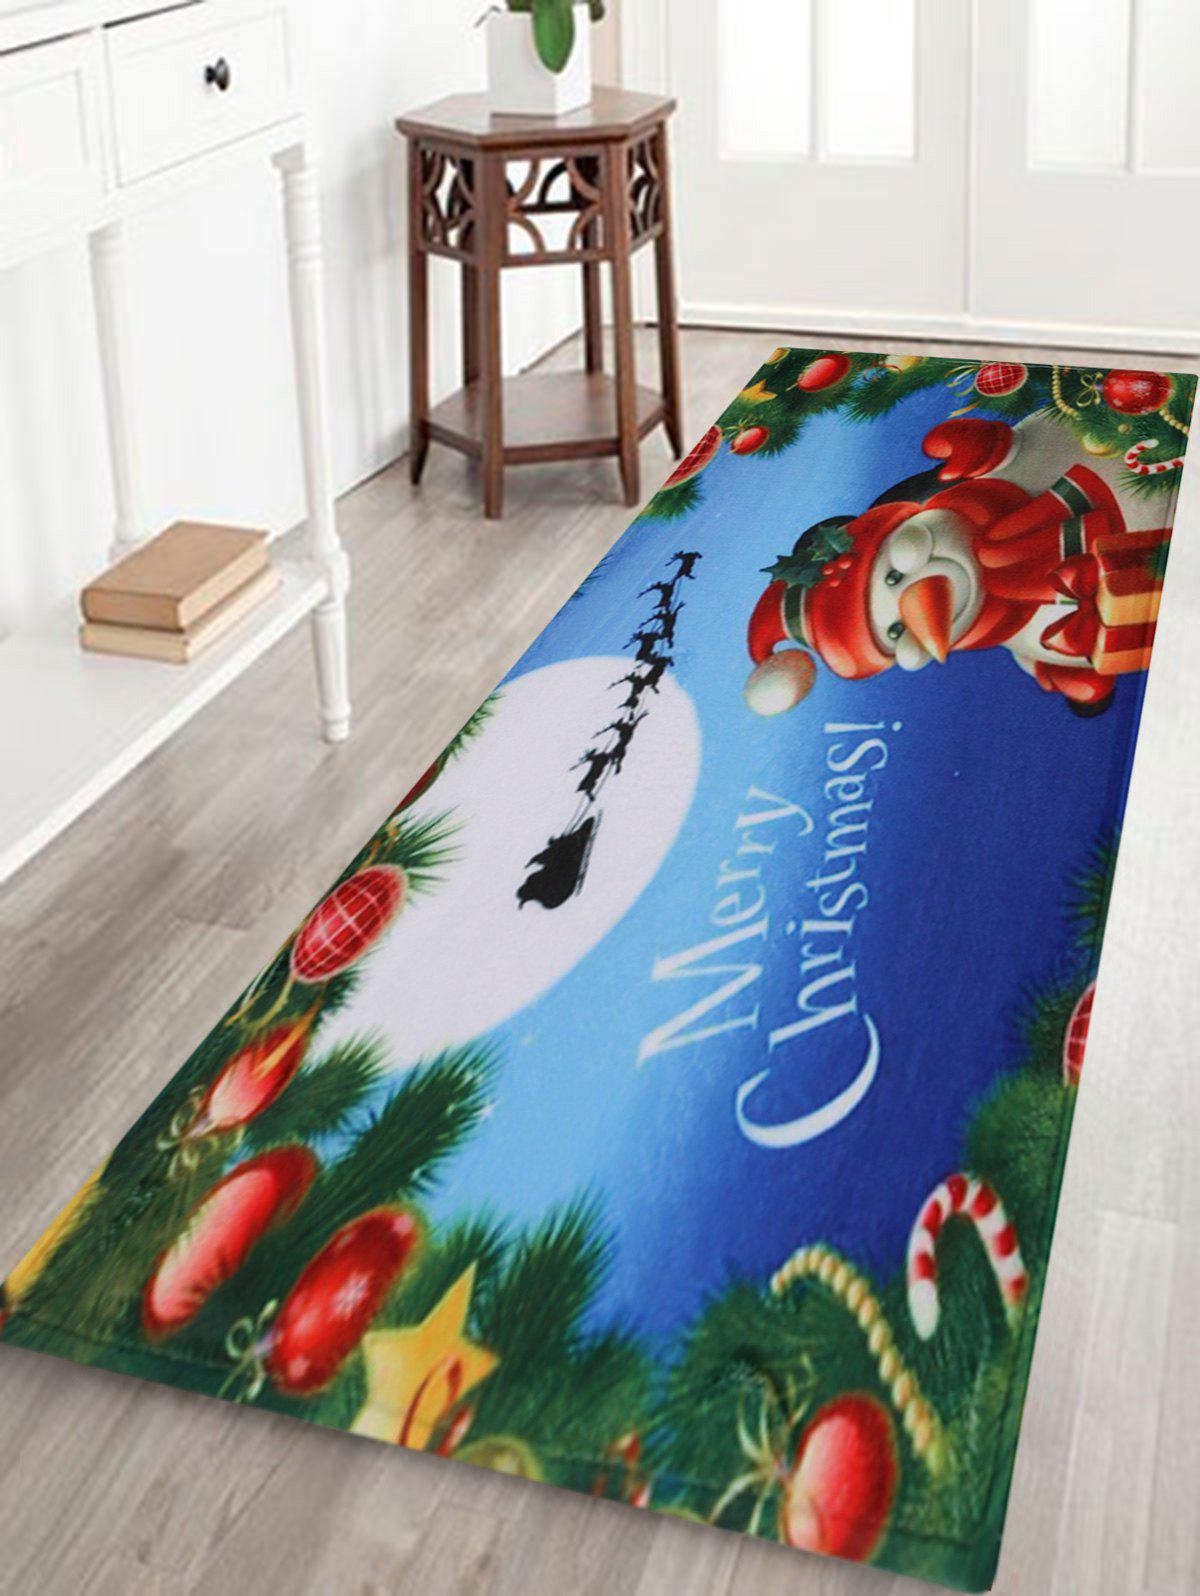 Merry Christmas Snowman Pattern Indoor Outdoor Area Rug - COLORMIX W24 INCH * L71 INCH